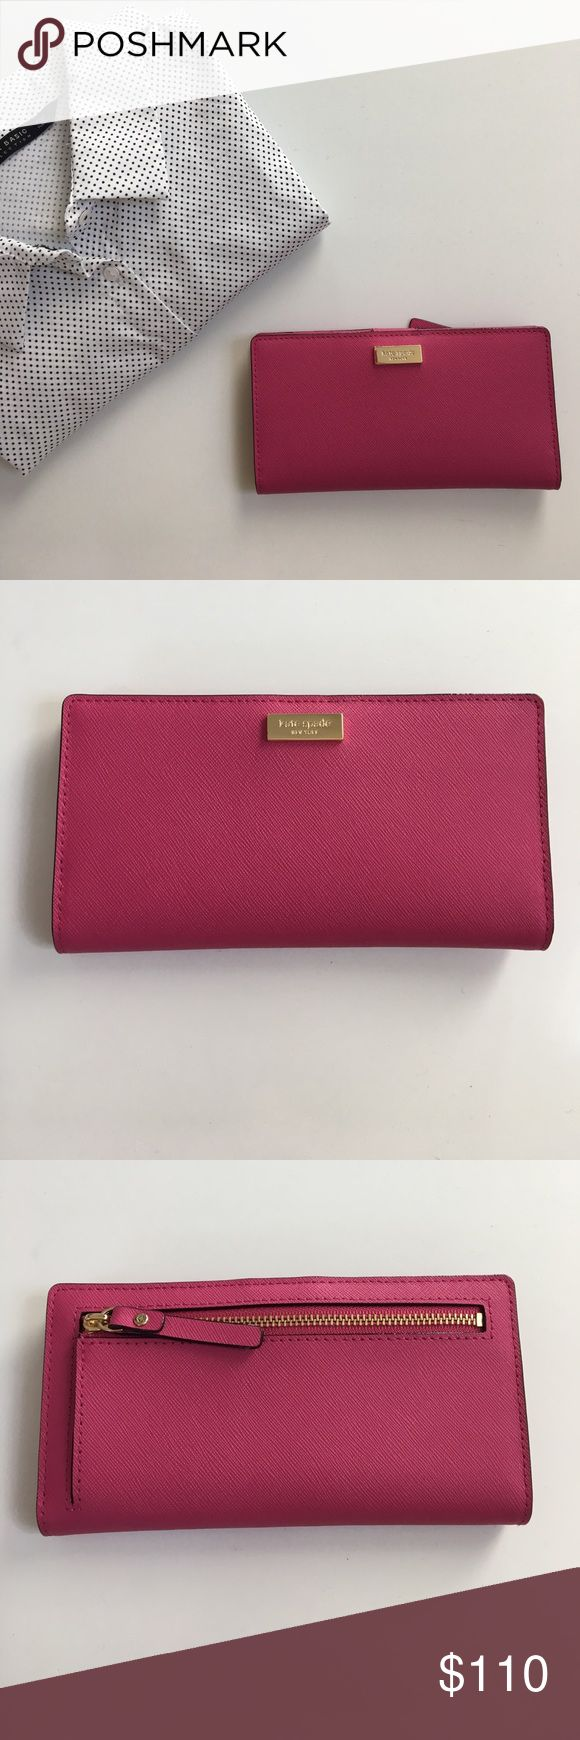 """{ Kate Spade } wallet Kate Spade Wallet in pink with gold colored hardware, back zipper pocket, snap button closure with lots of CC and bill slots, ID slot and cute material lining in areas (see pictures). Such a cute color and wallet! Measures laying flat approx 6.75"""" w x 3.6"""" h x .75"""" d kate spade Bags Wallets"""